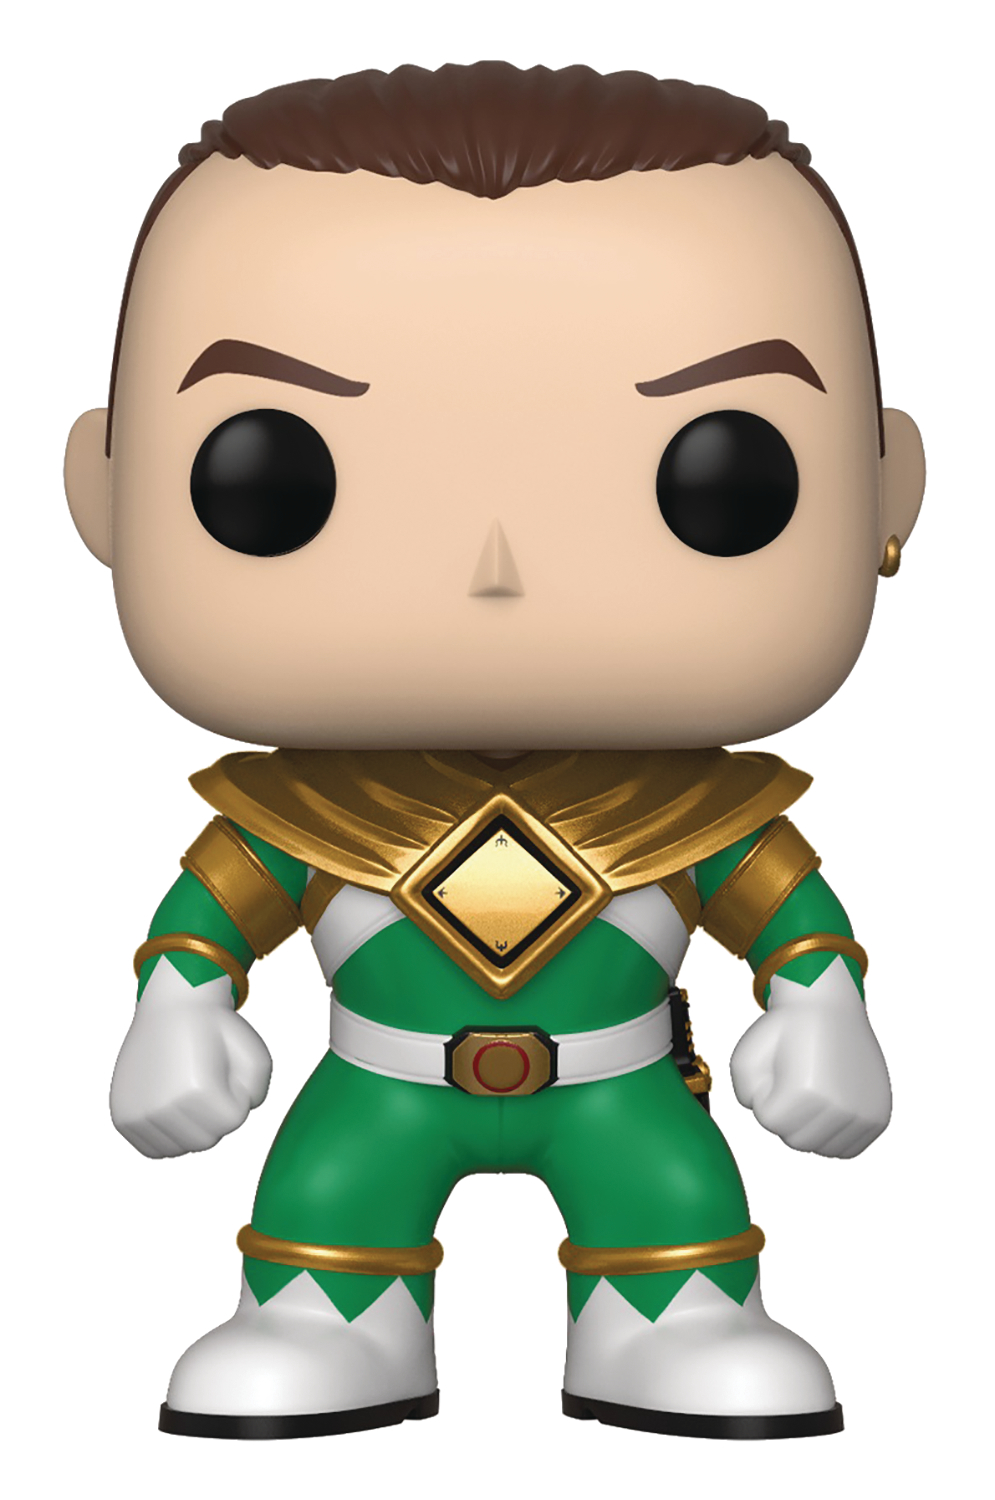 POP TV POWER RANGERS S7 TOMMY VINYL FIG